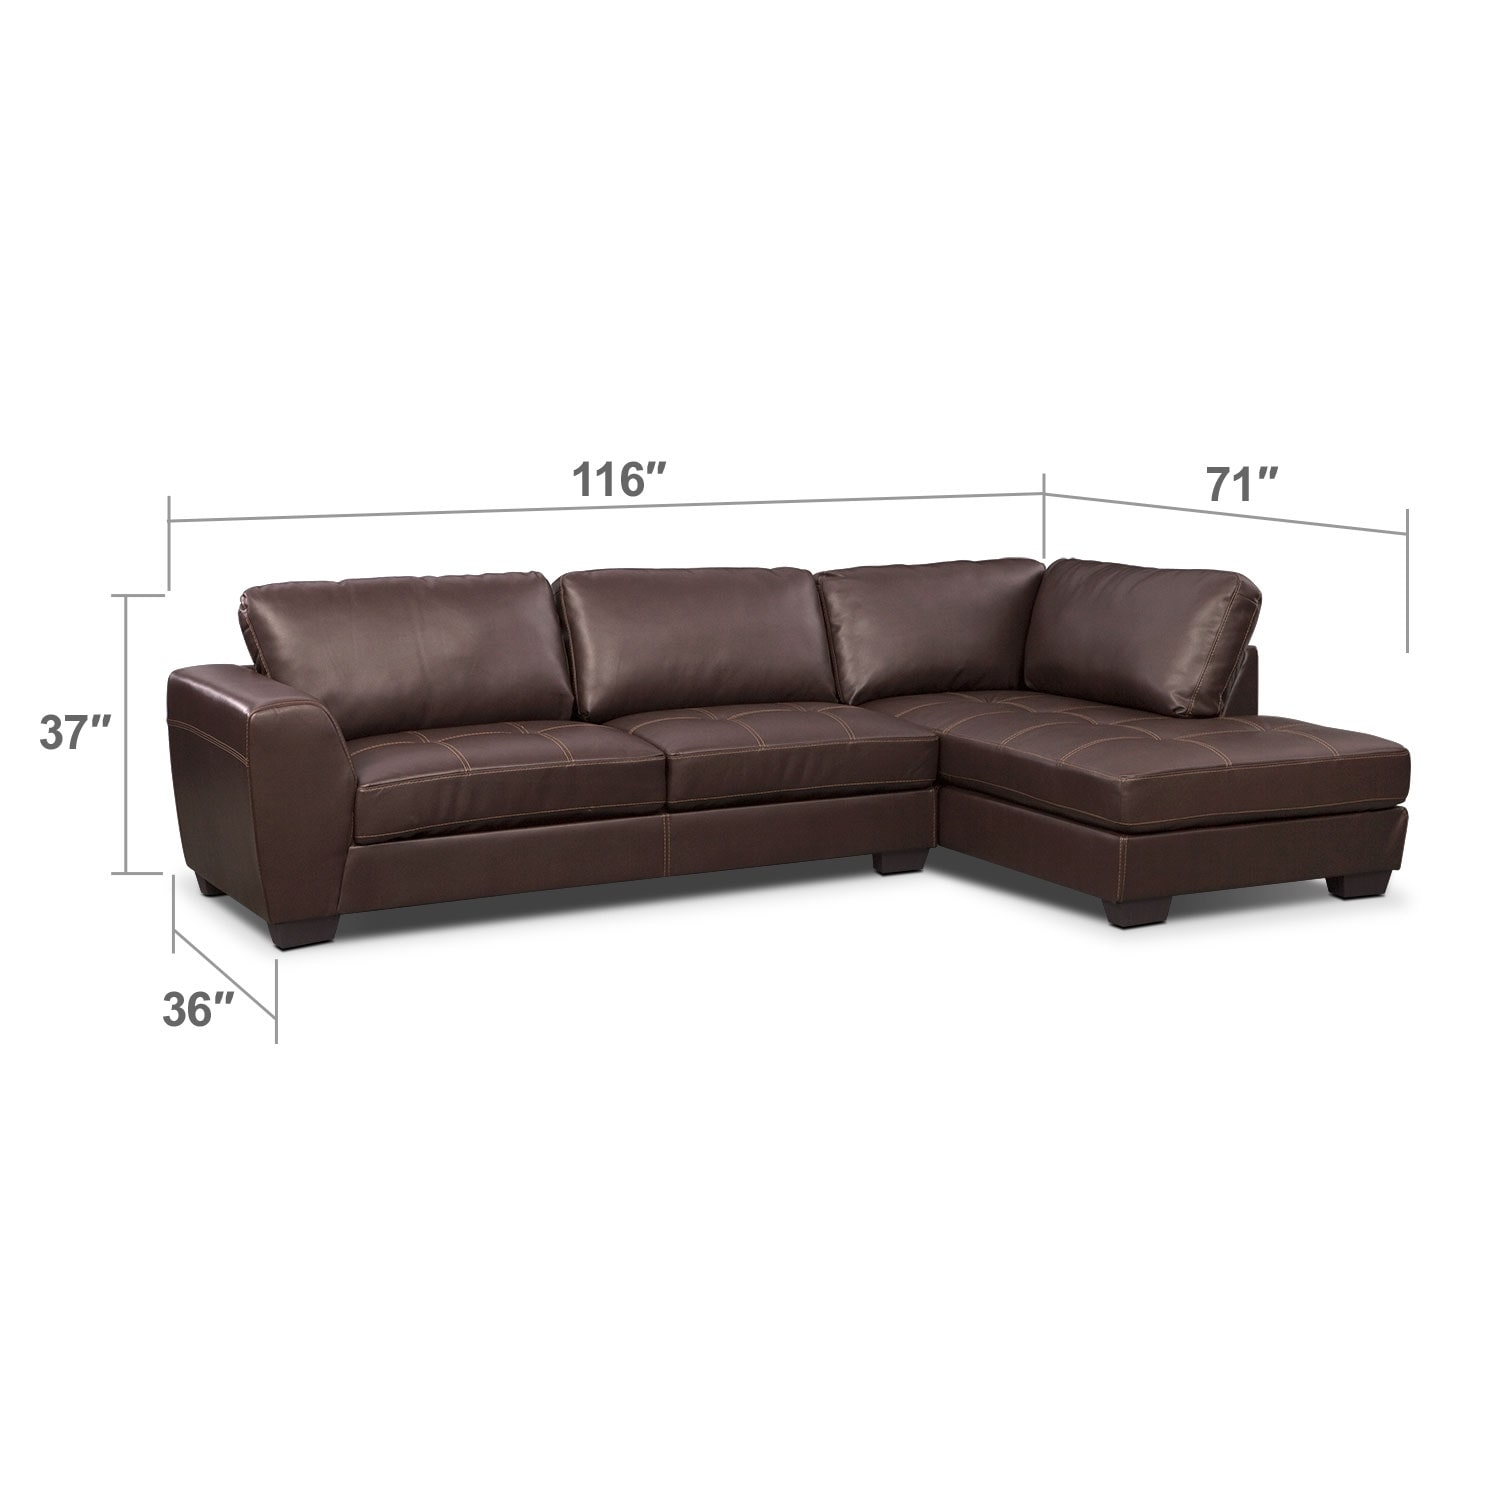 Living Room Furniture - Lyon Brown 2 Pc. Sectional (Reverse)